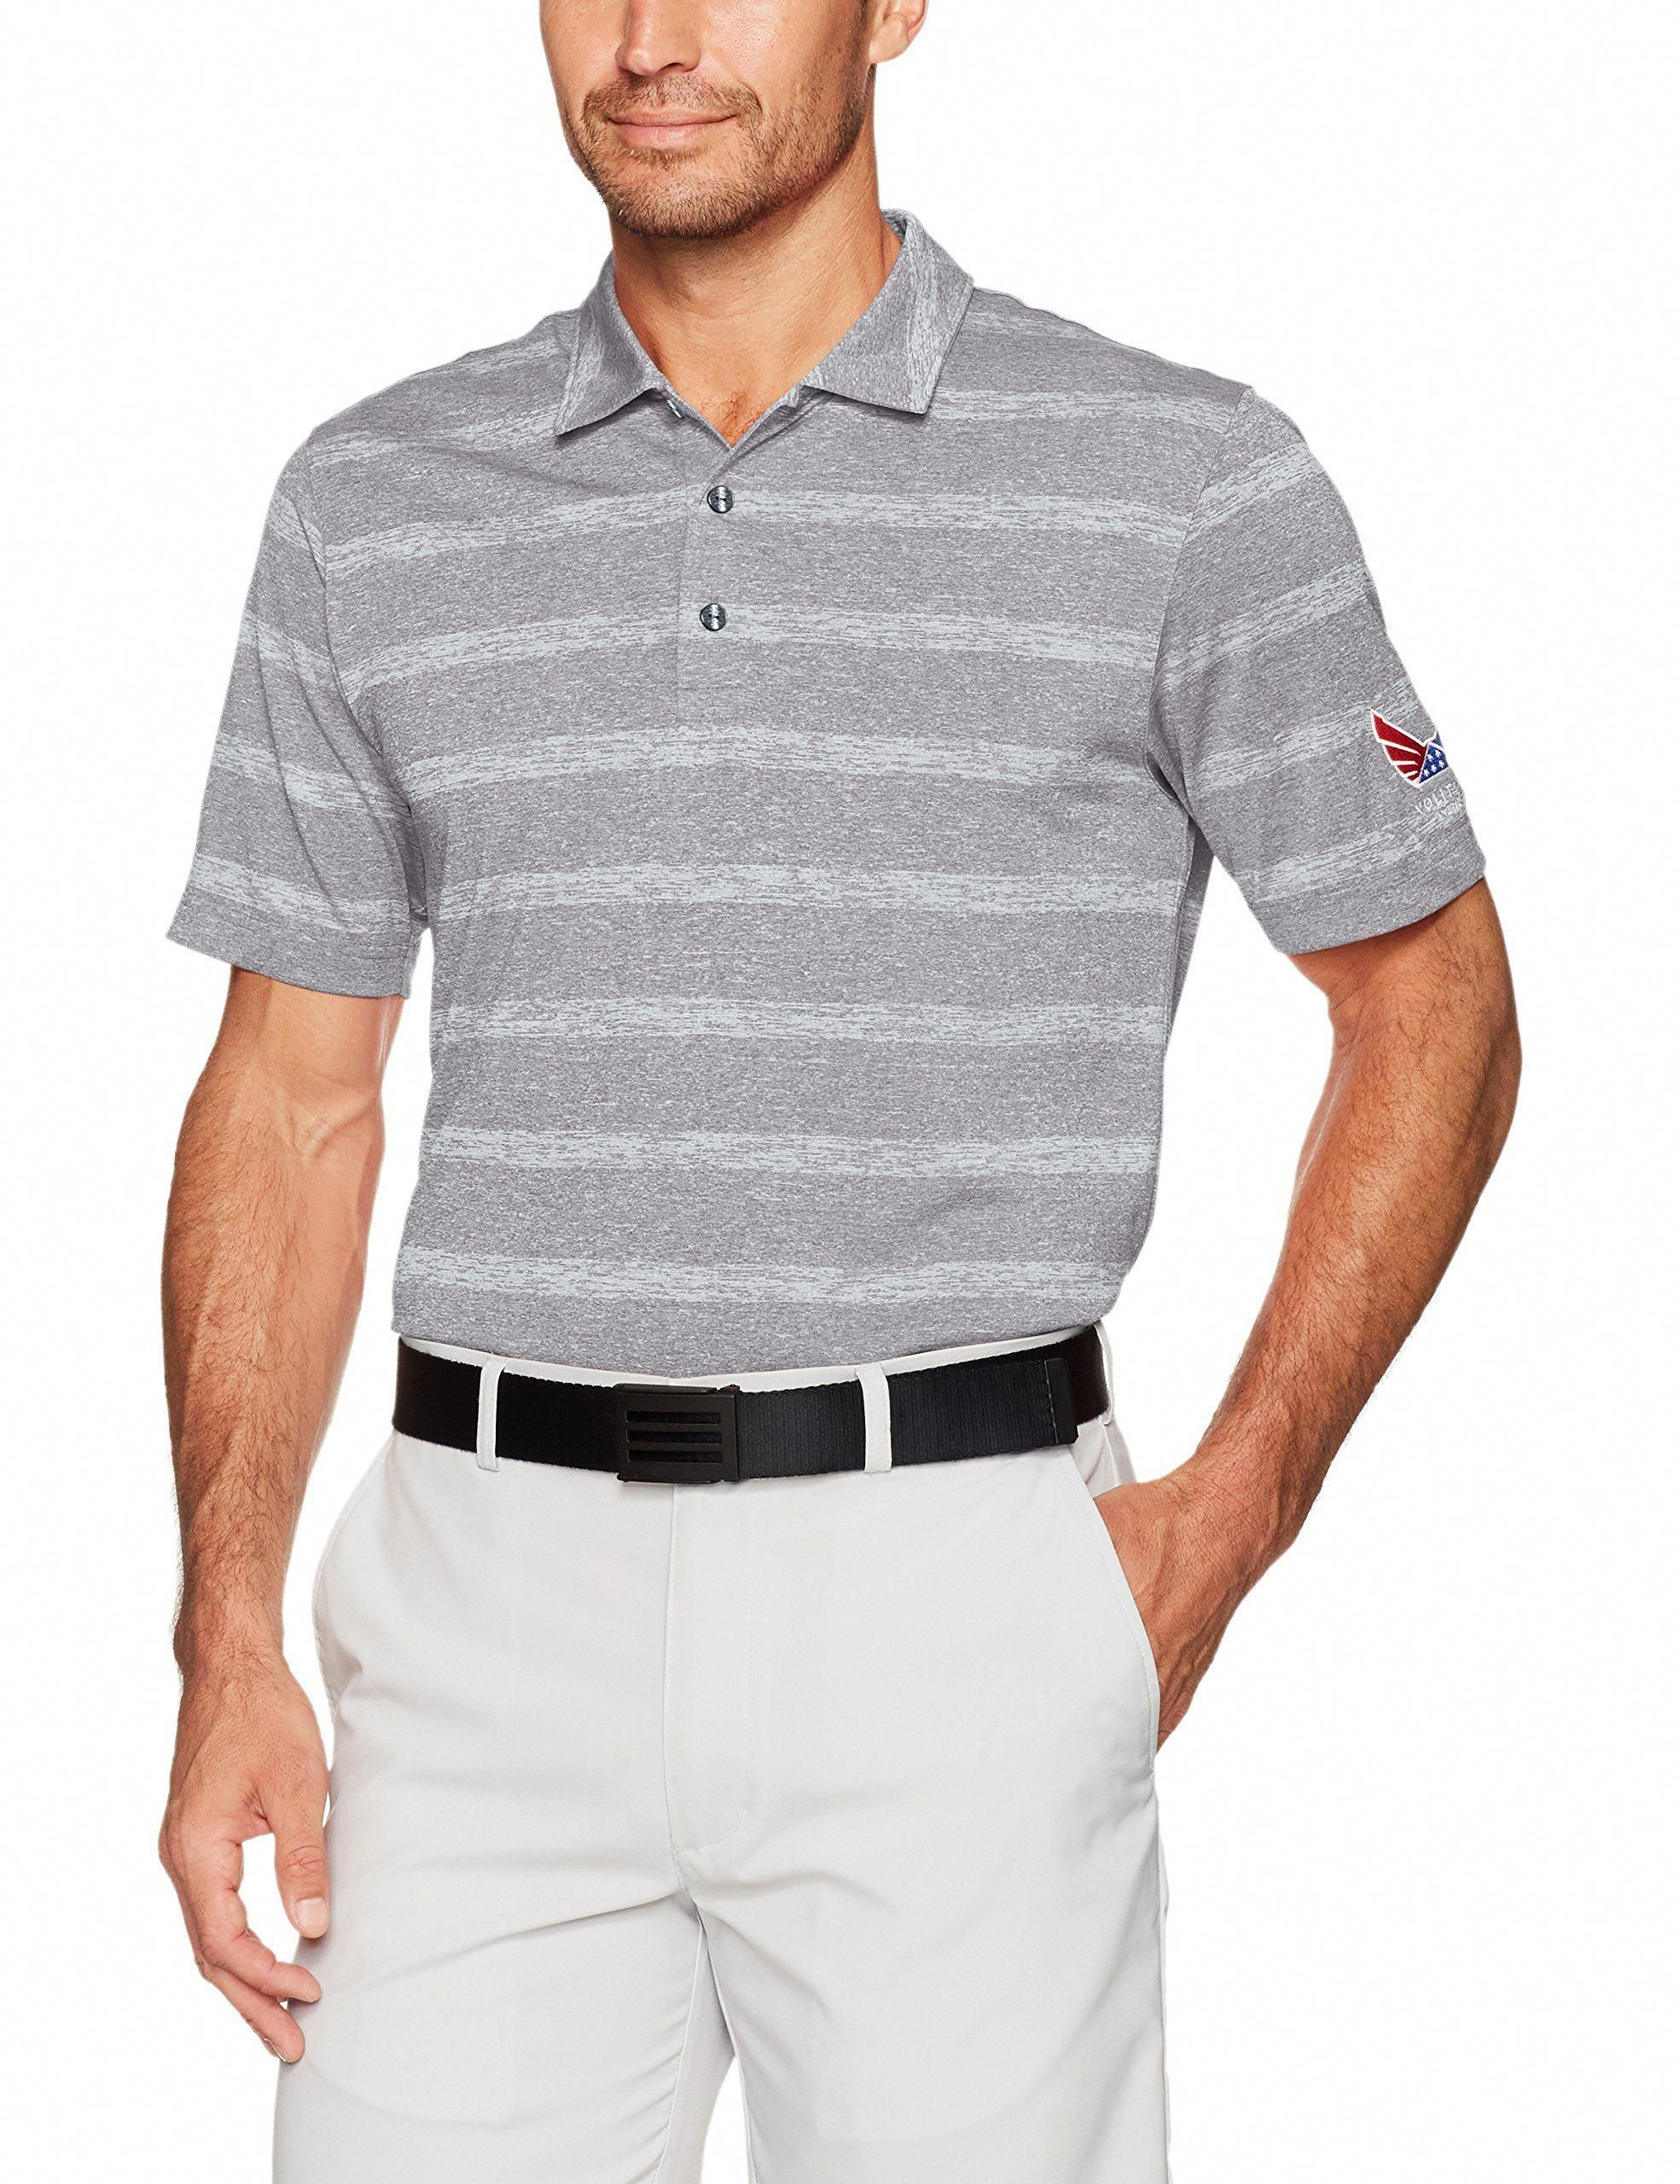 c6b735abc Men Golf Clothing     Puma Golf 2017 Mens Volition Stripe Polo Quiet Shade  XLarge     You could get additional information at the image web link.